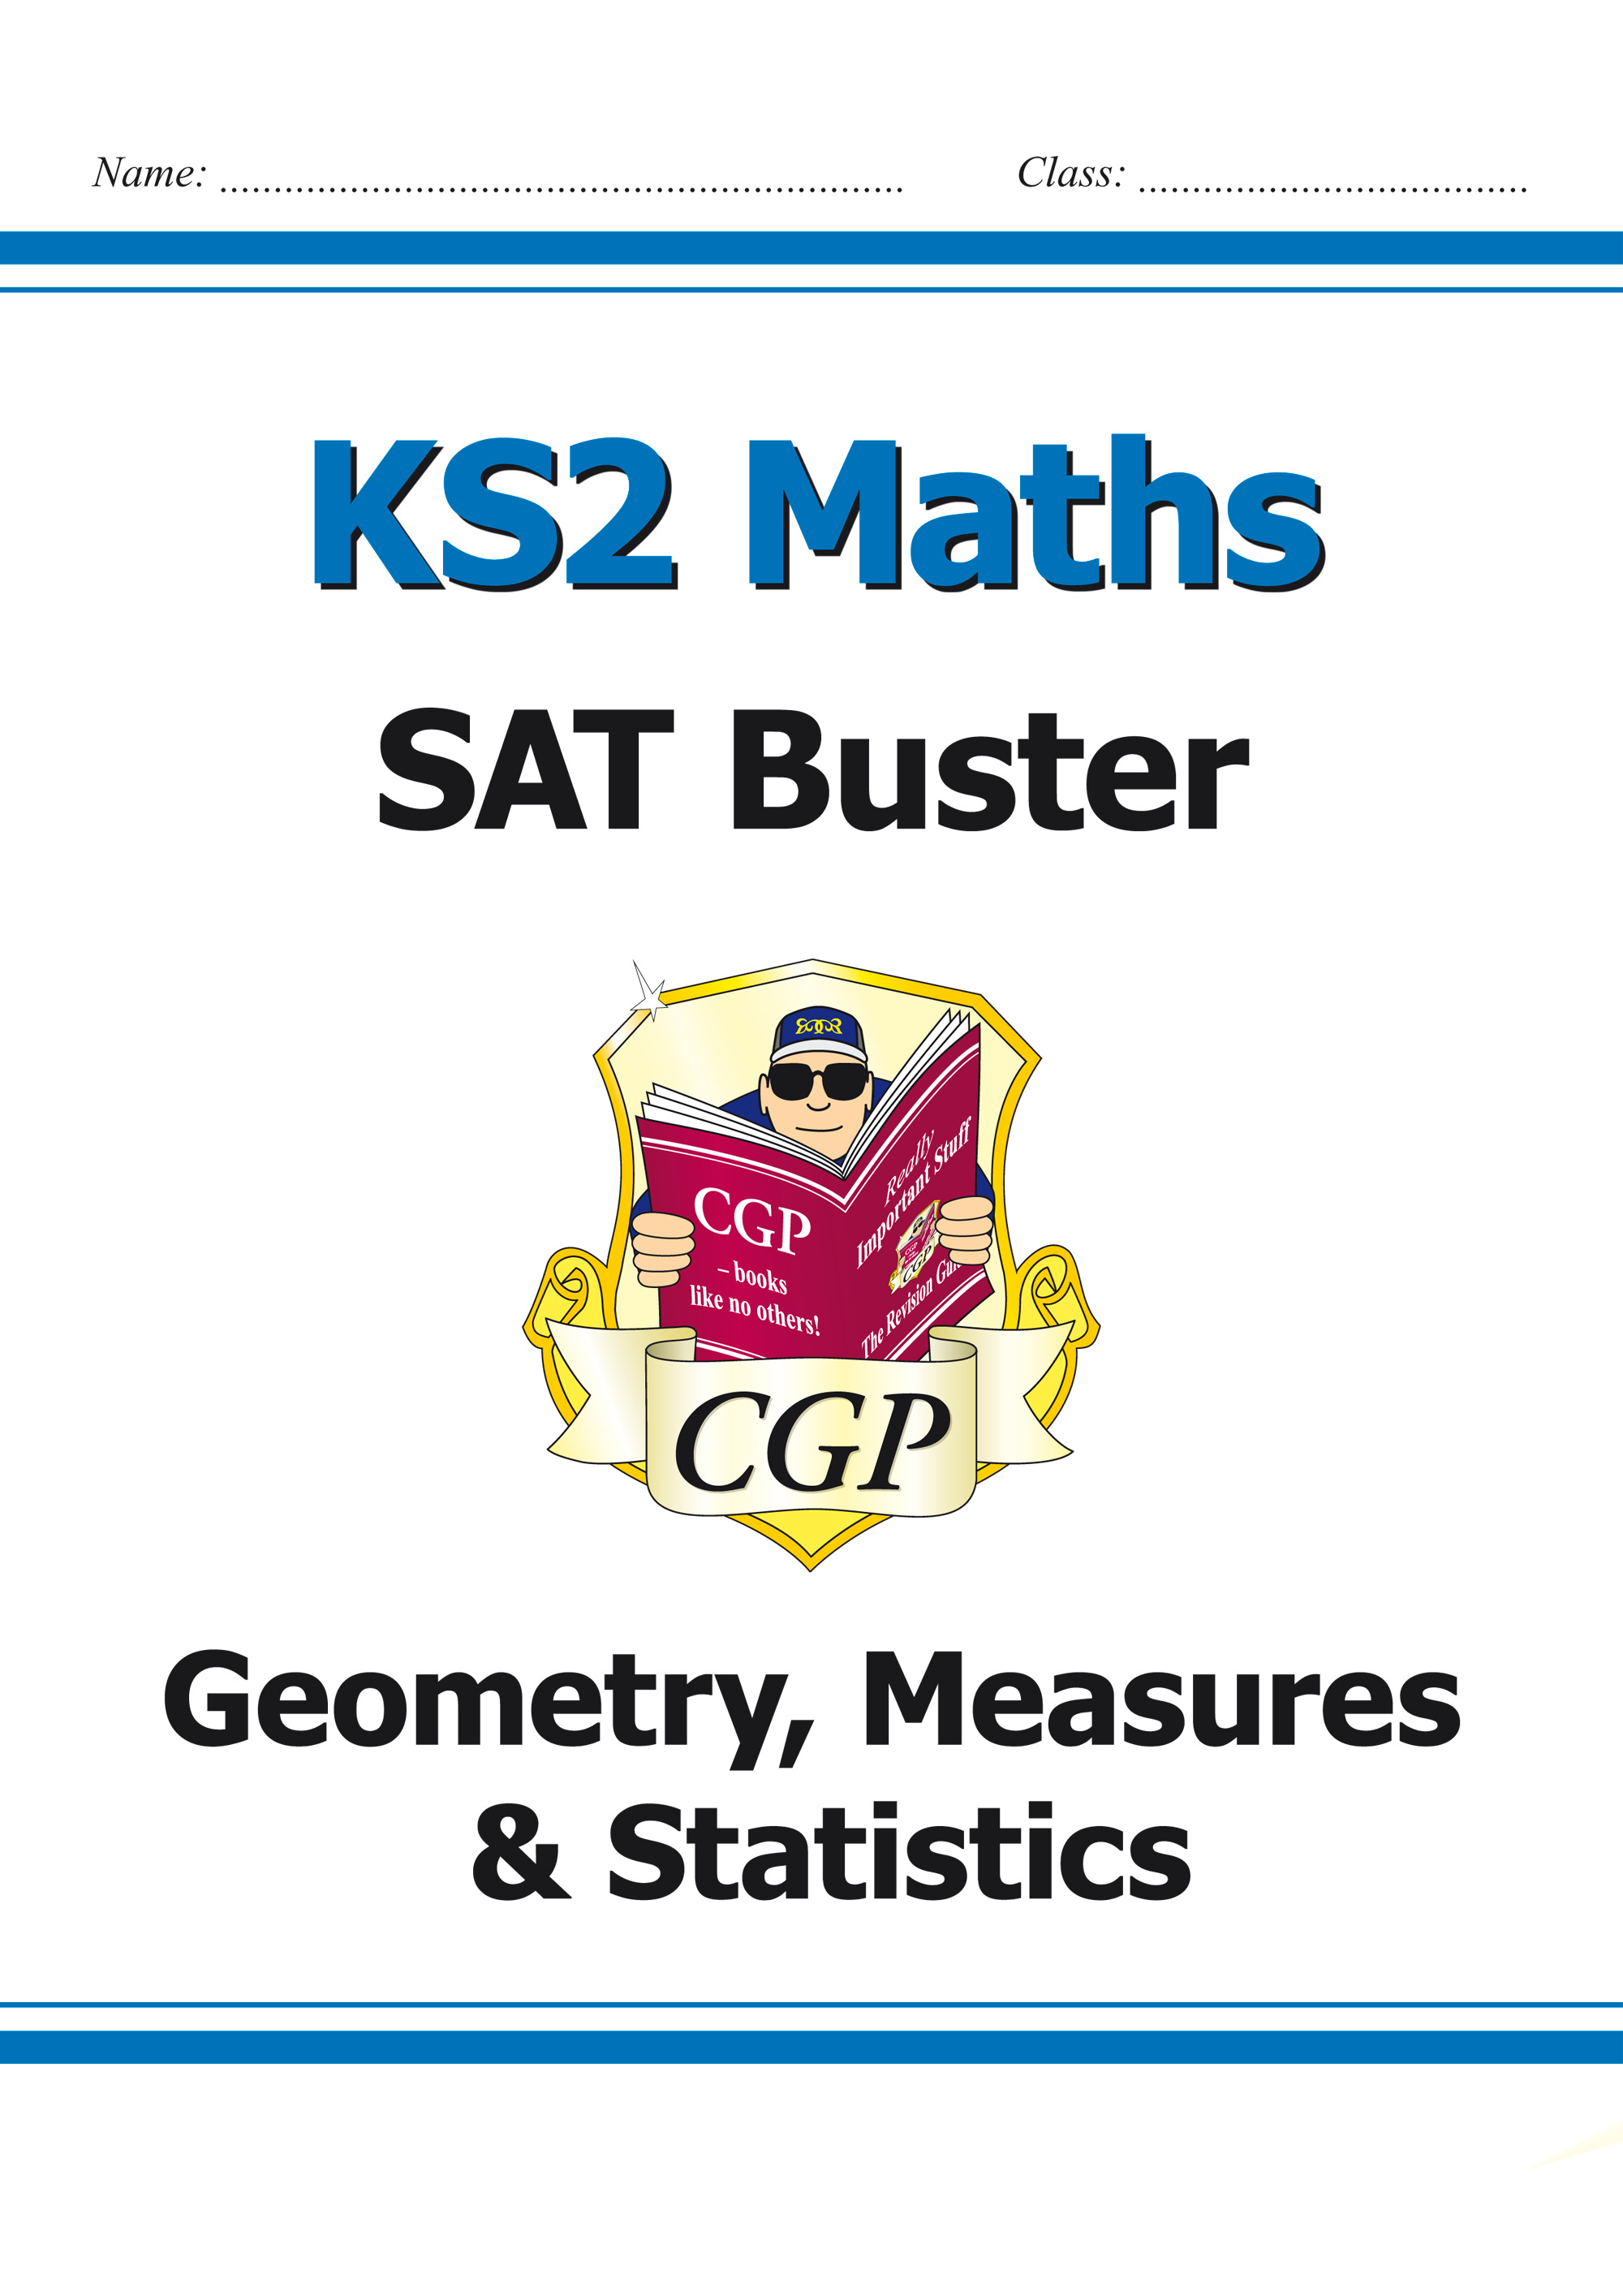 M6SMD23 - KS2 Maths SAT Buster: Geometry, Measures & Statistics Book 1 (for the 2020 tests)